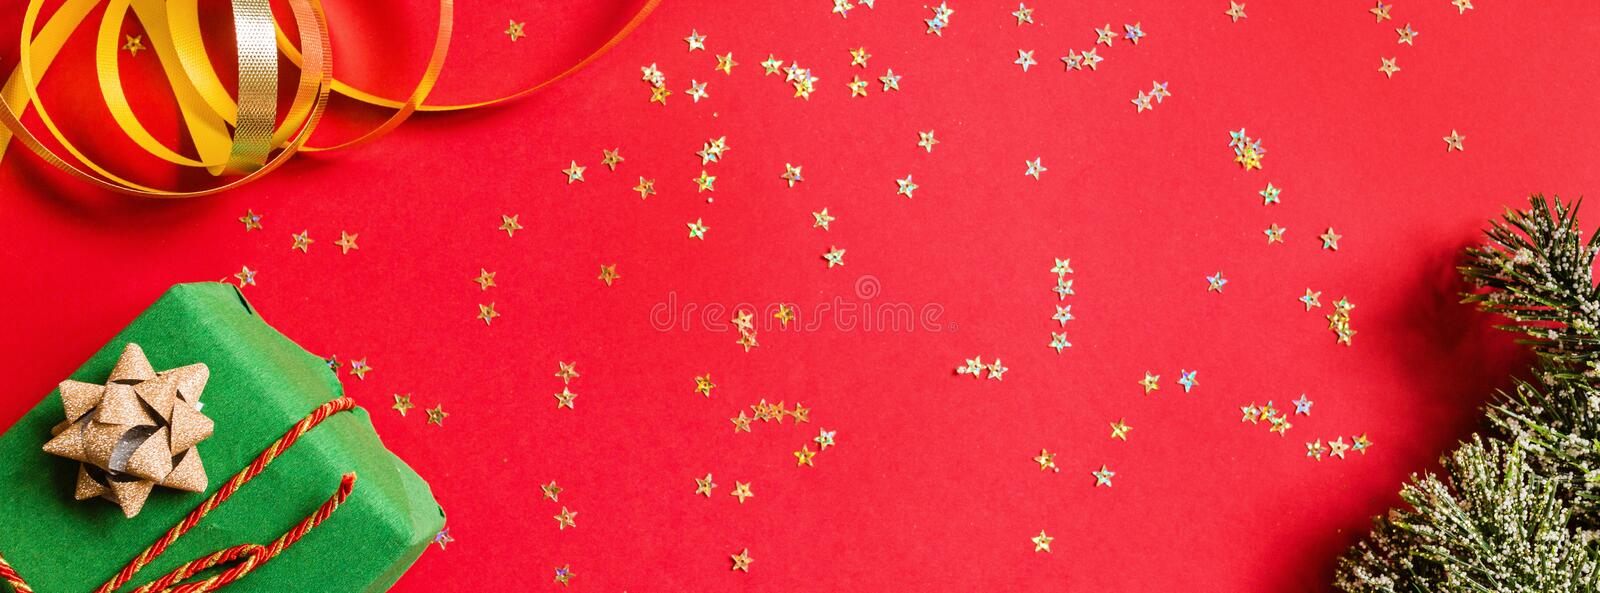 Christmas gift, tree branches on red background with golden confetti. Horizontal banner for web design. new year concept. Greeting stock photo